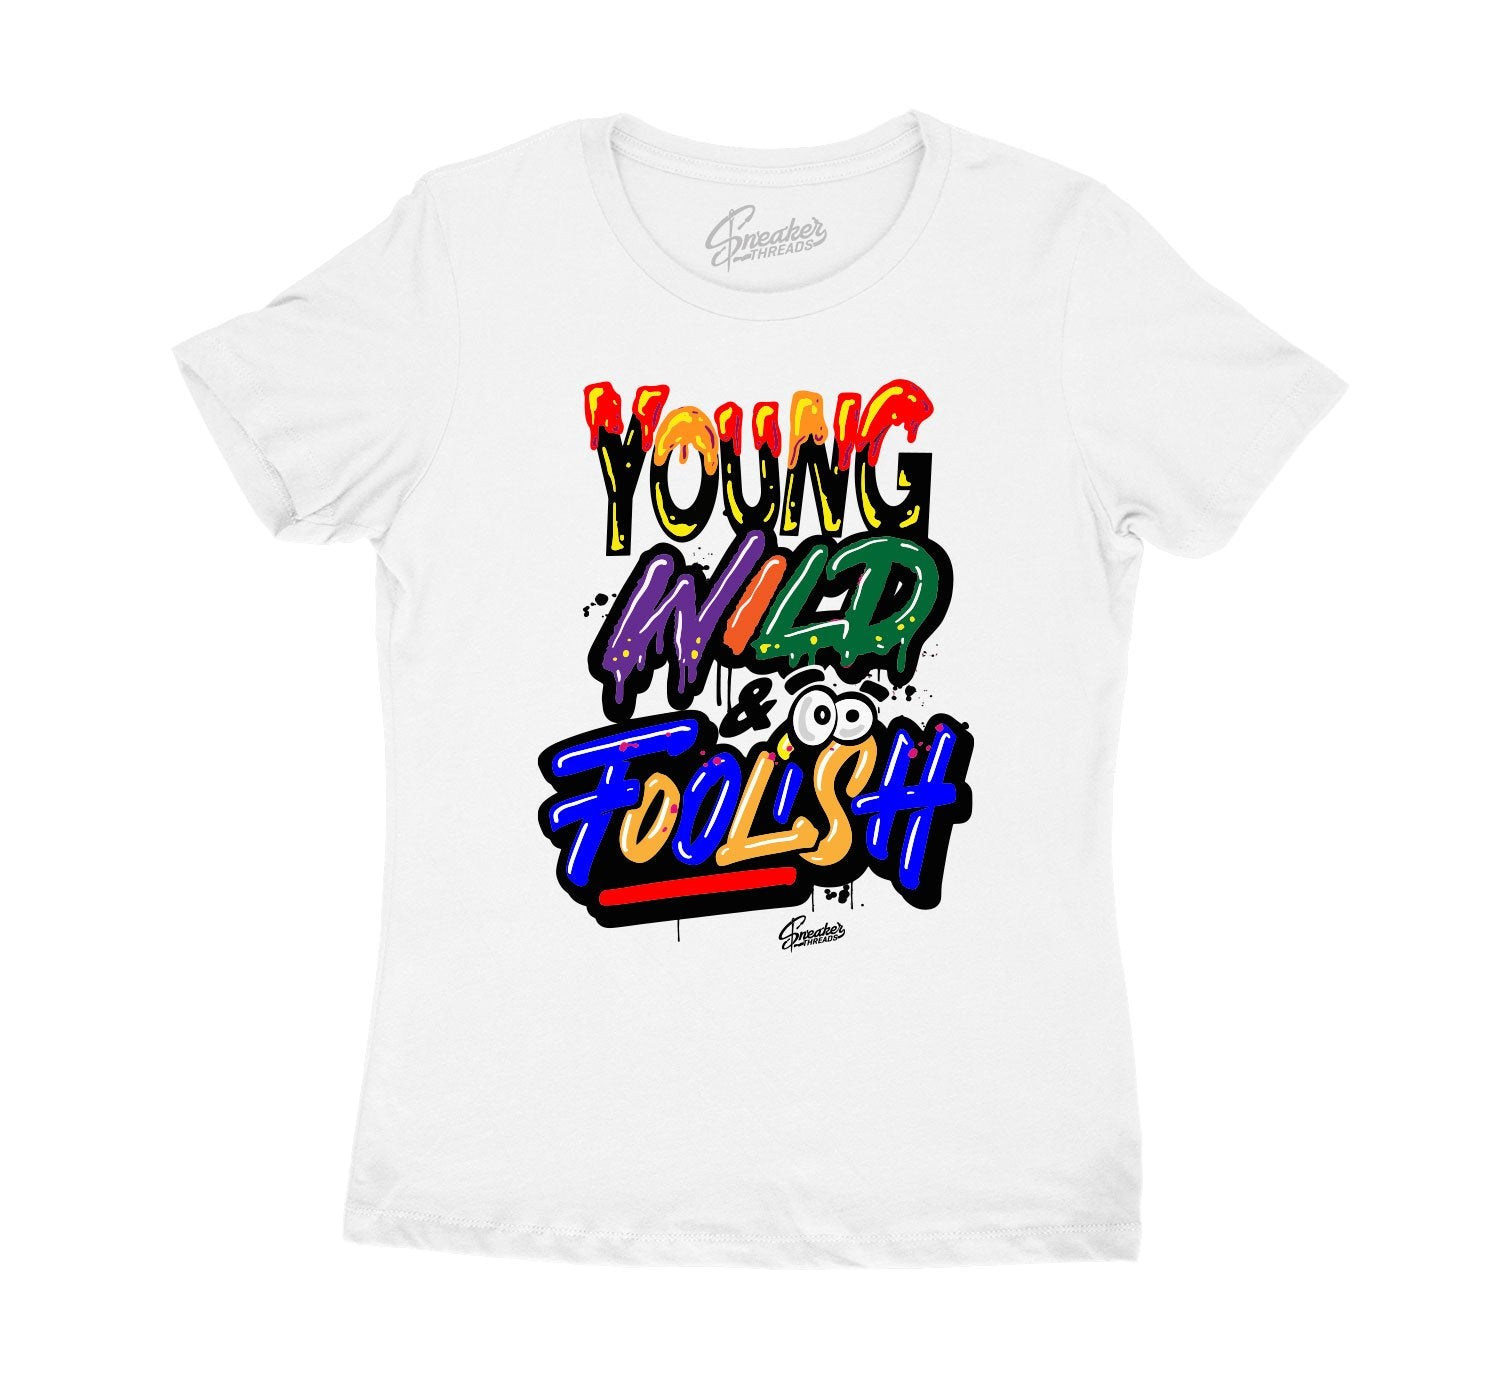 Womens tees collection matching the Jordan 2 multicolor sneakers